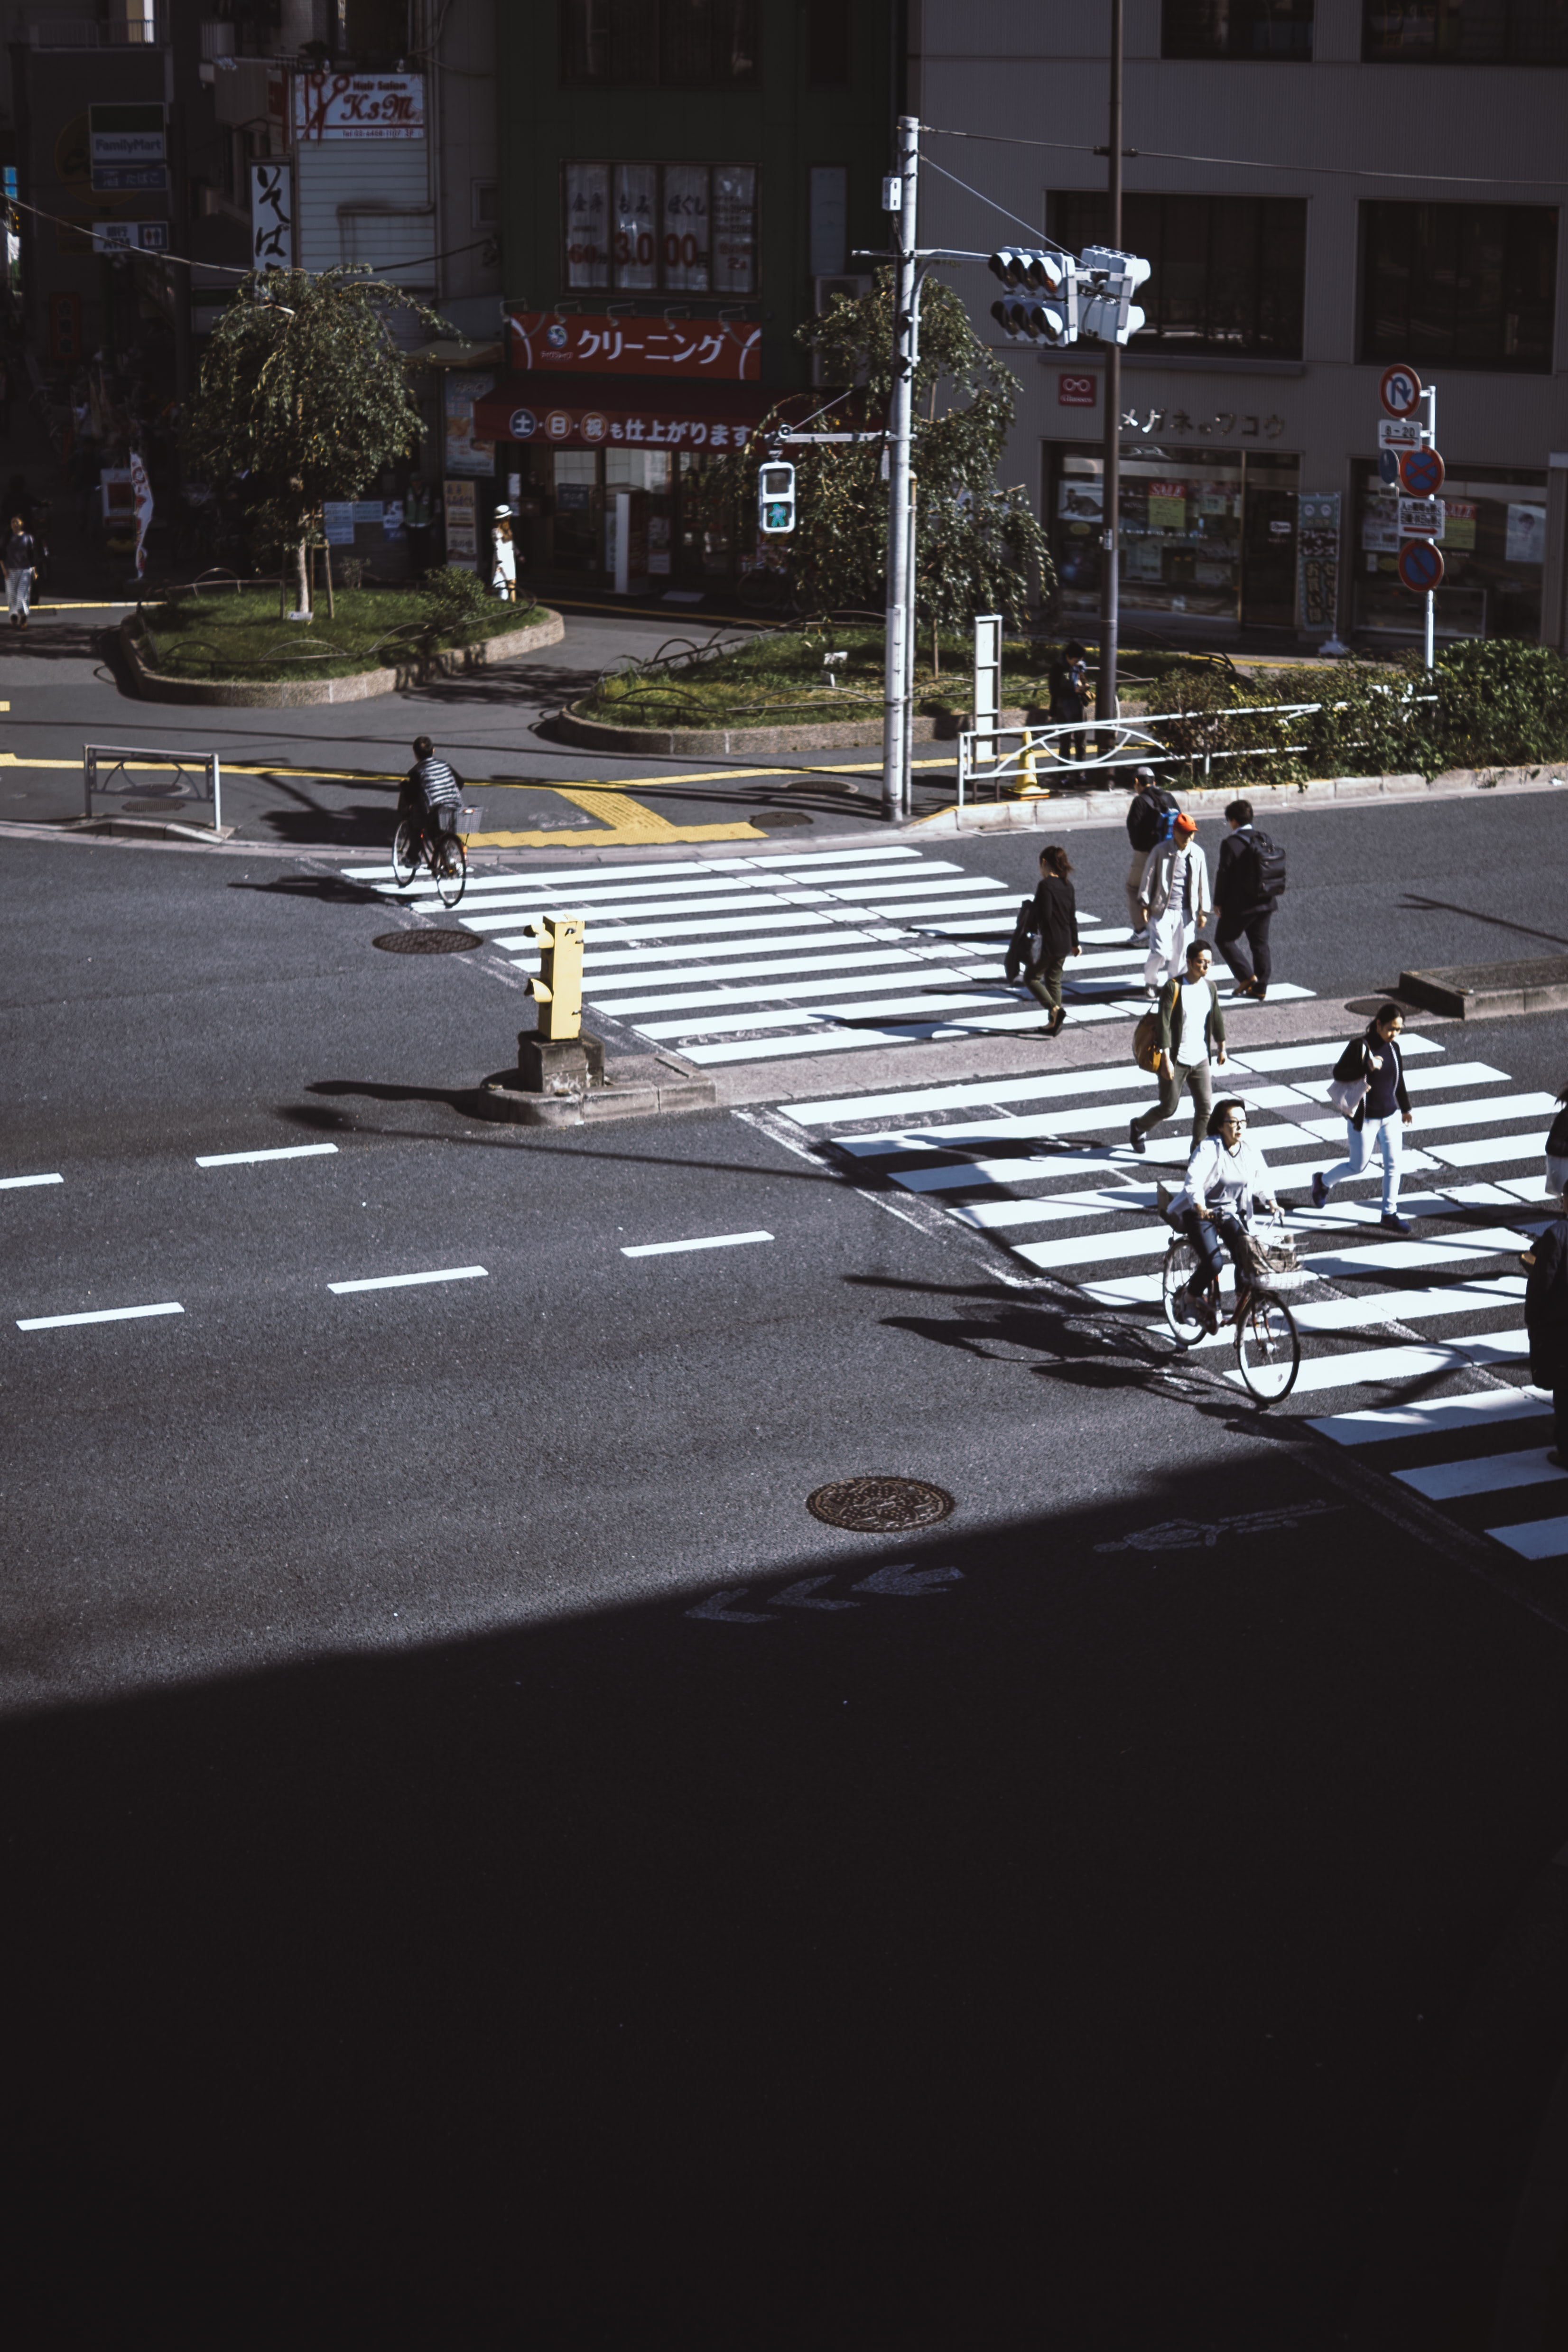 people walking on pedestrian lane across road during daytime